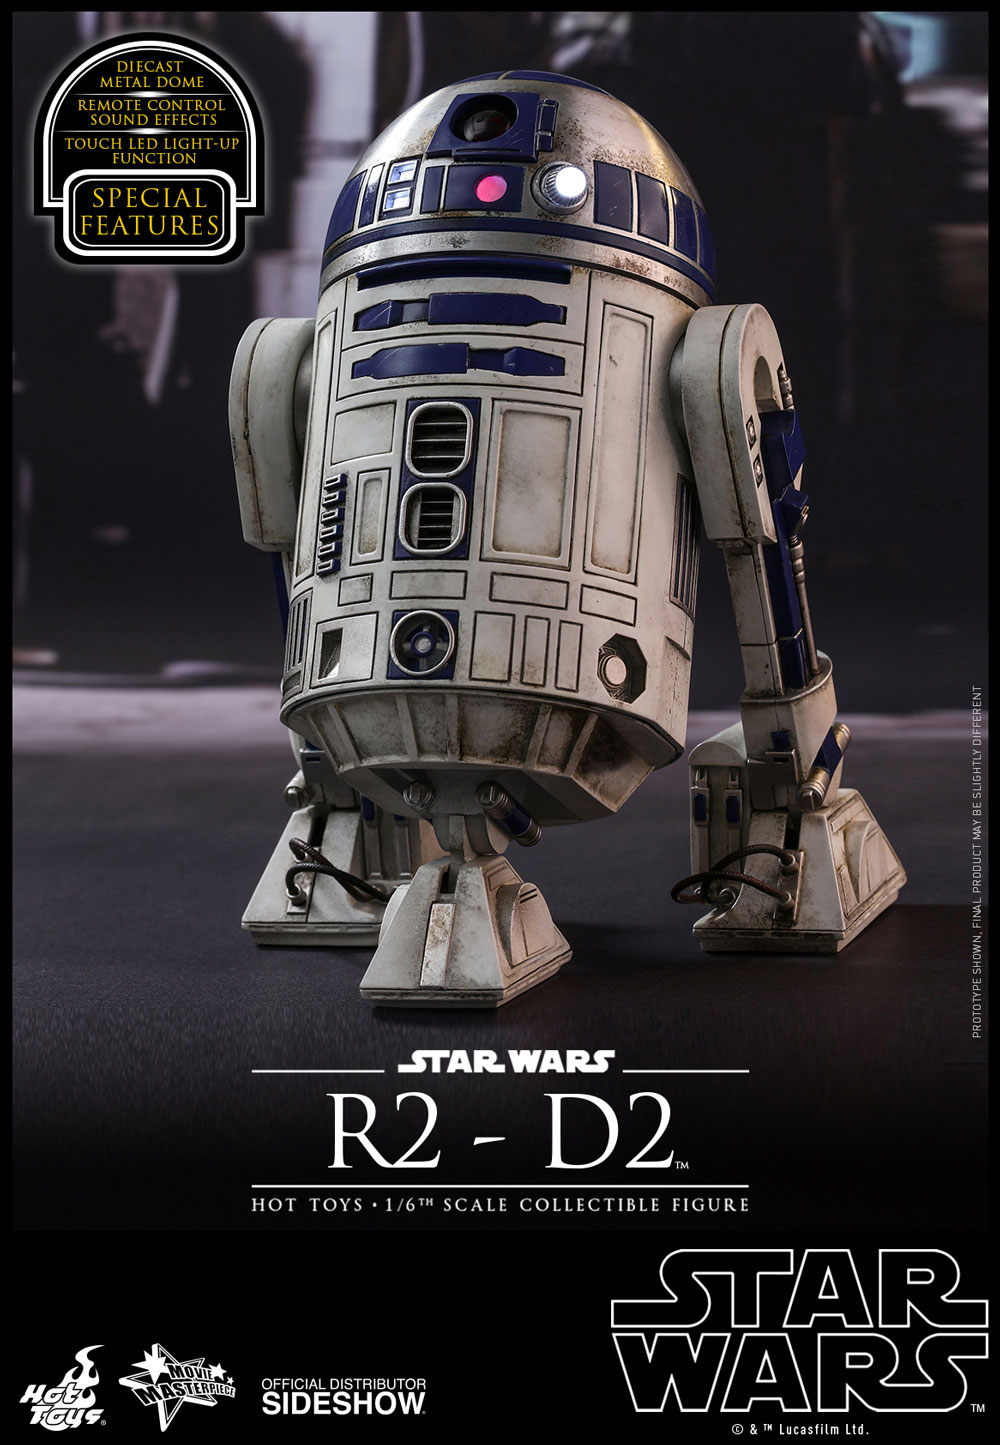 HOT TOYS MMS408 STAR WARS THE FORCE AWAKENS R2-D2 MASTERPIECE 1//6 ACTION FIGURE